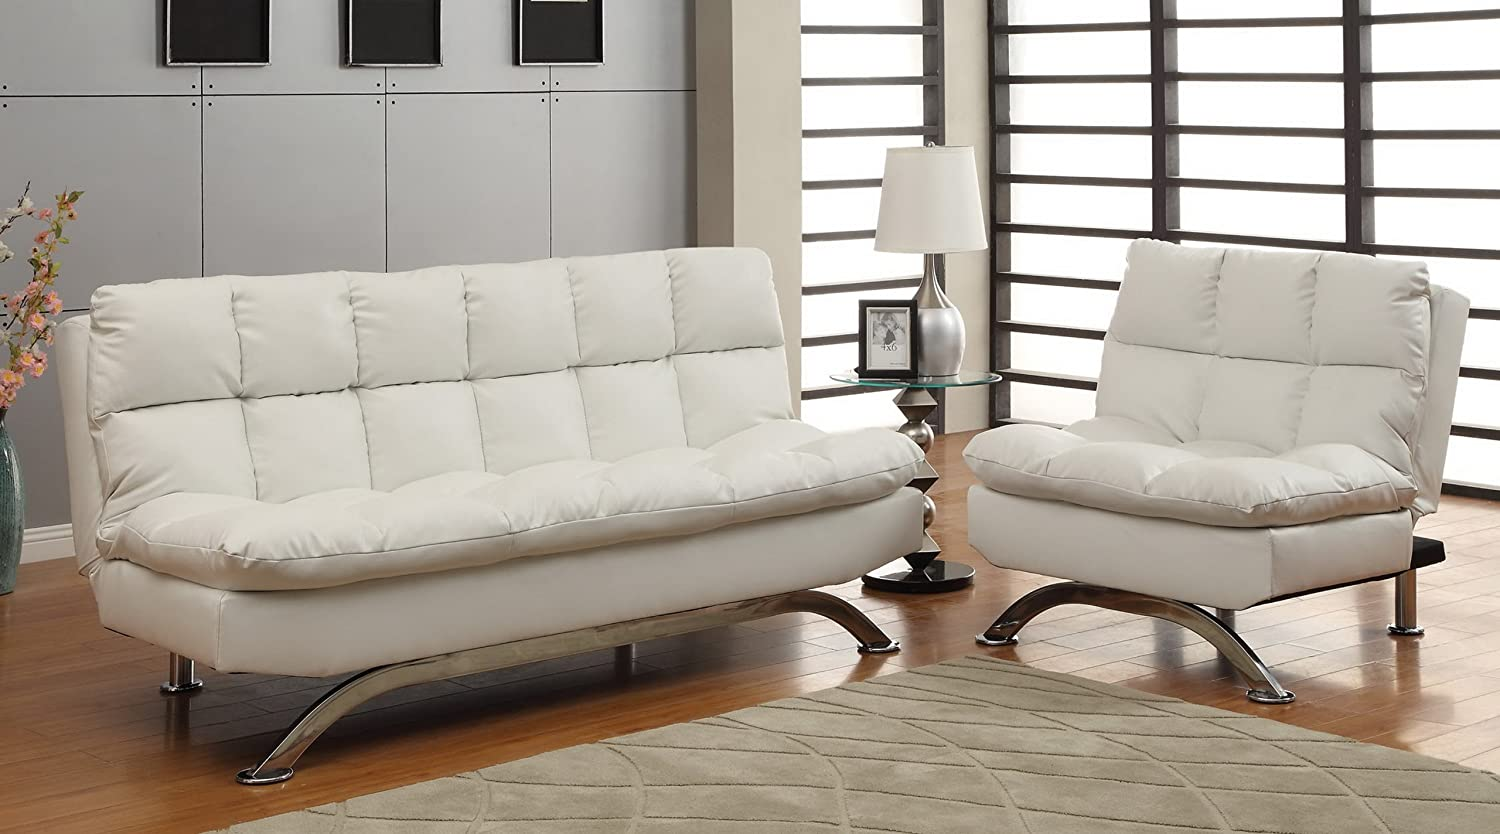 Good Amazon.com: Furniture Of America Ethel Leatherette Convertible Sofa And Chair  Set, White: Kitchen U0026 Dining